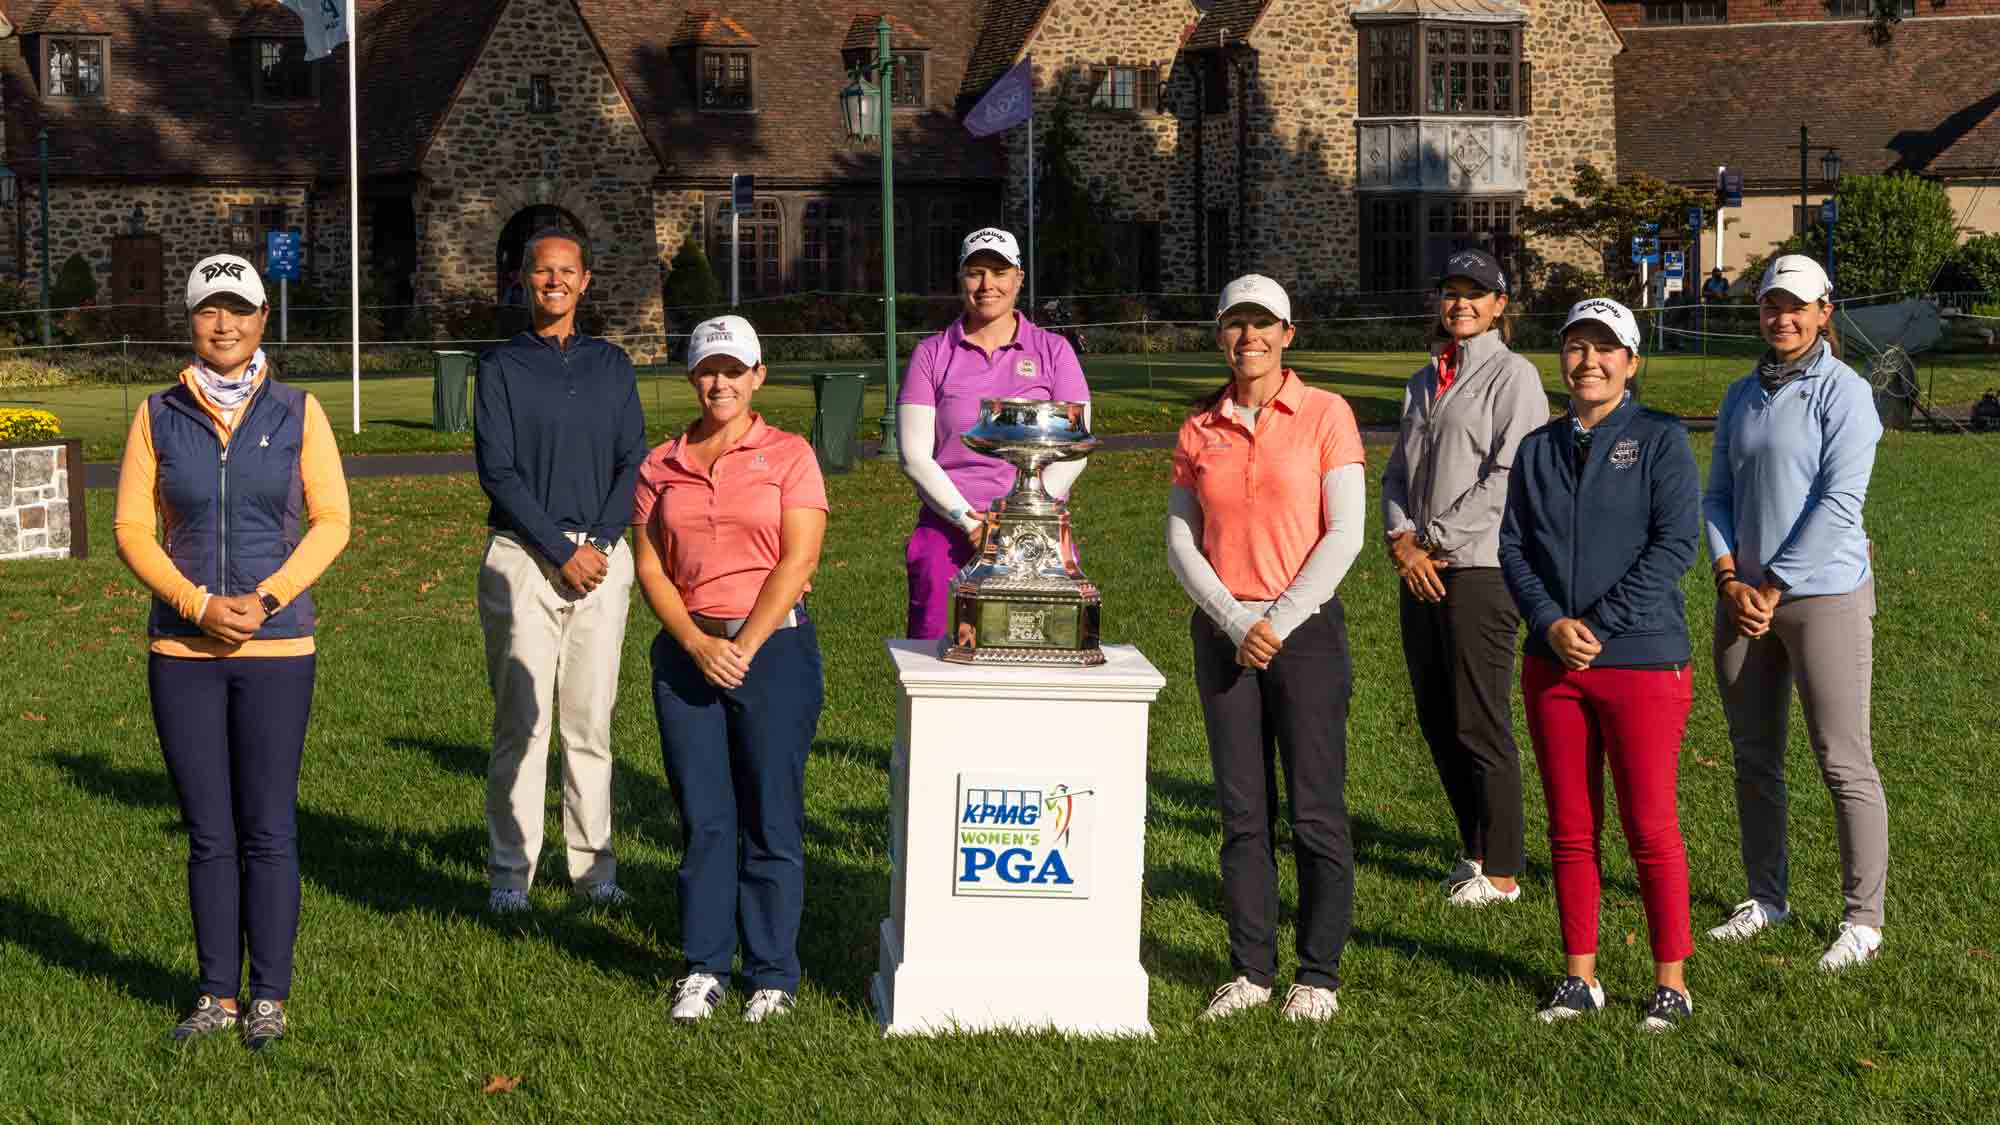 PGA/LPGA Professionals ahead of the KPMG Women's PGA Championship